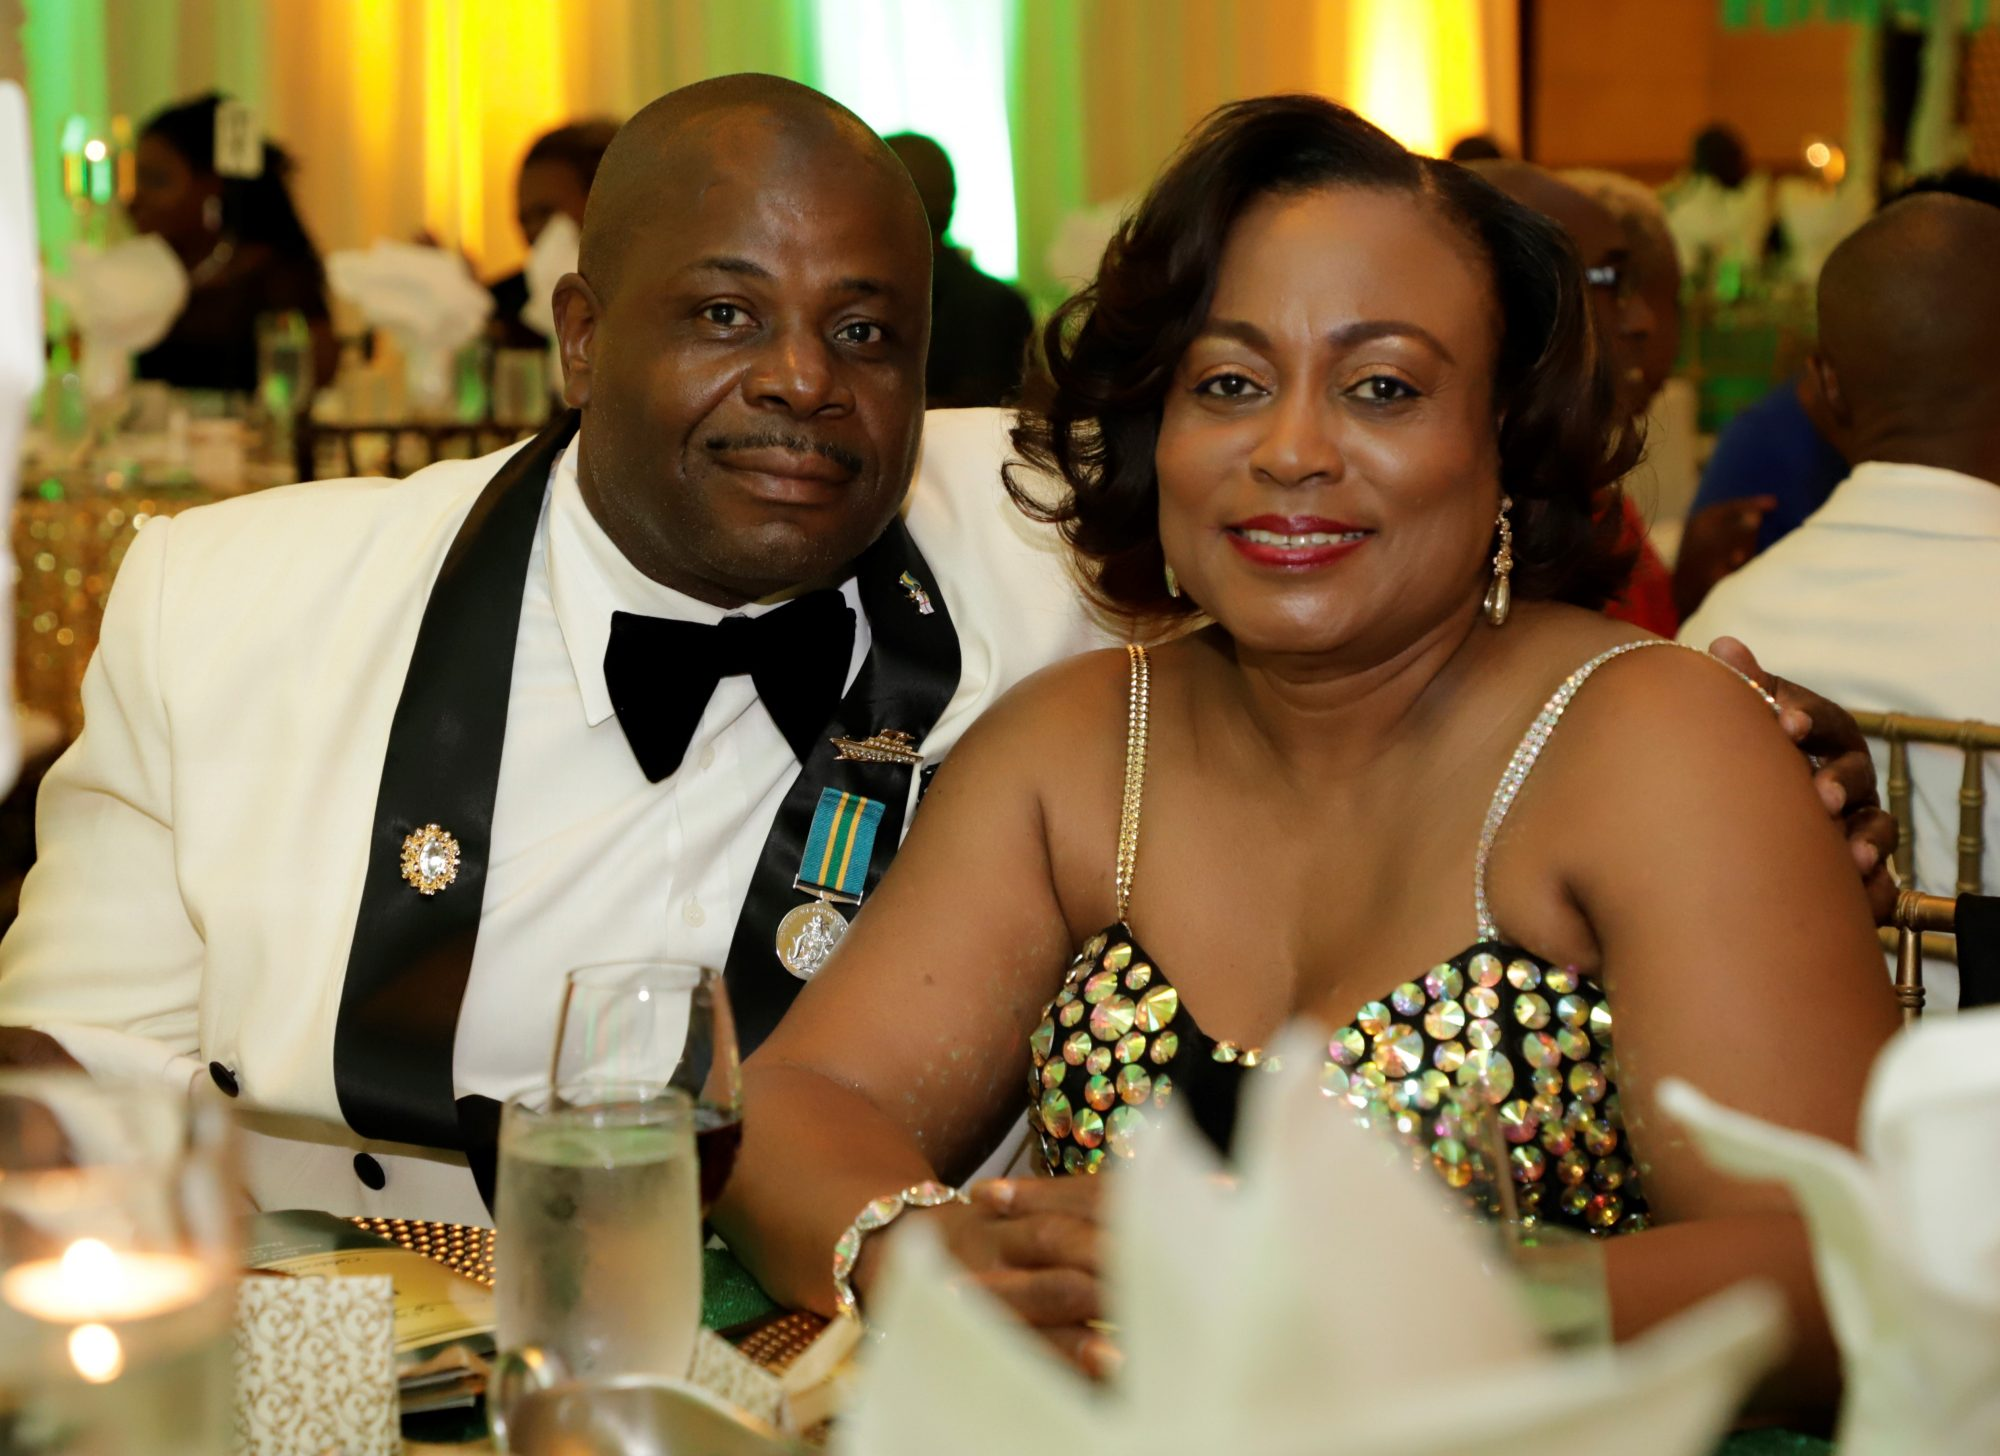 Retired Petty Officer Anthony Maycock and his guest at the Annual Military Ball on June 1st.